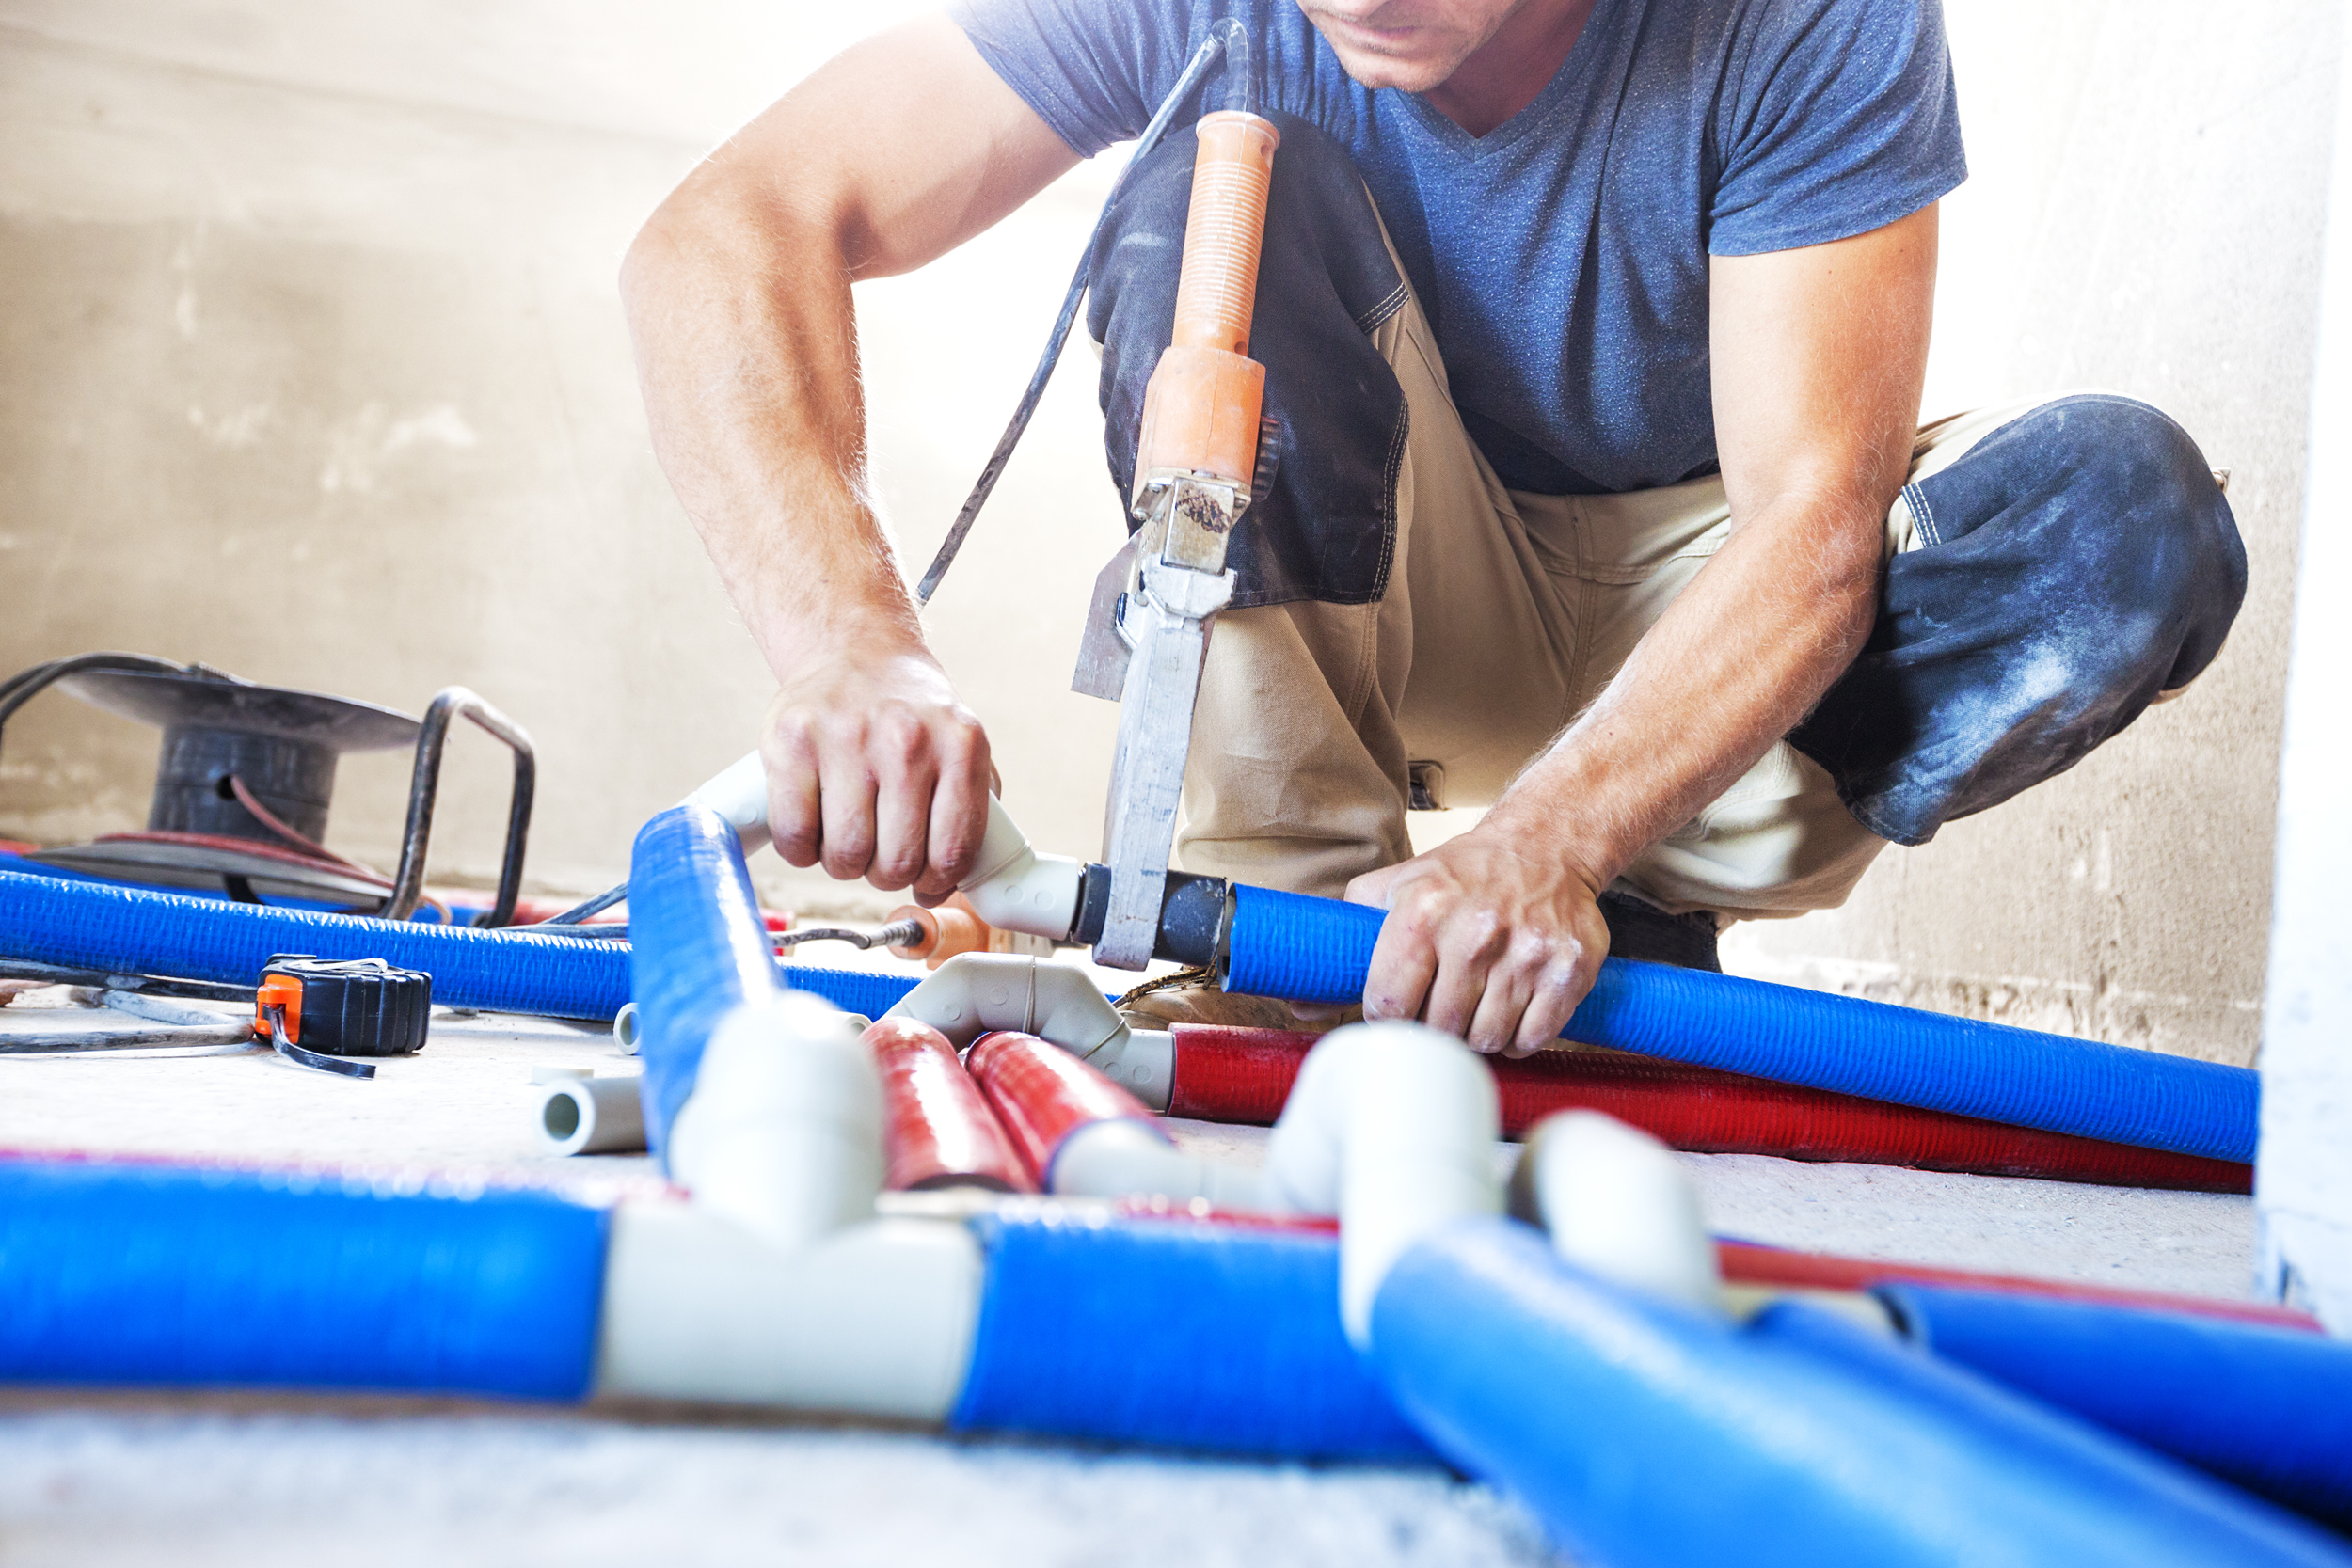 HVAC installer tools for air conditioning